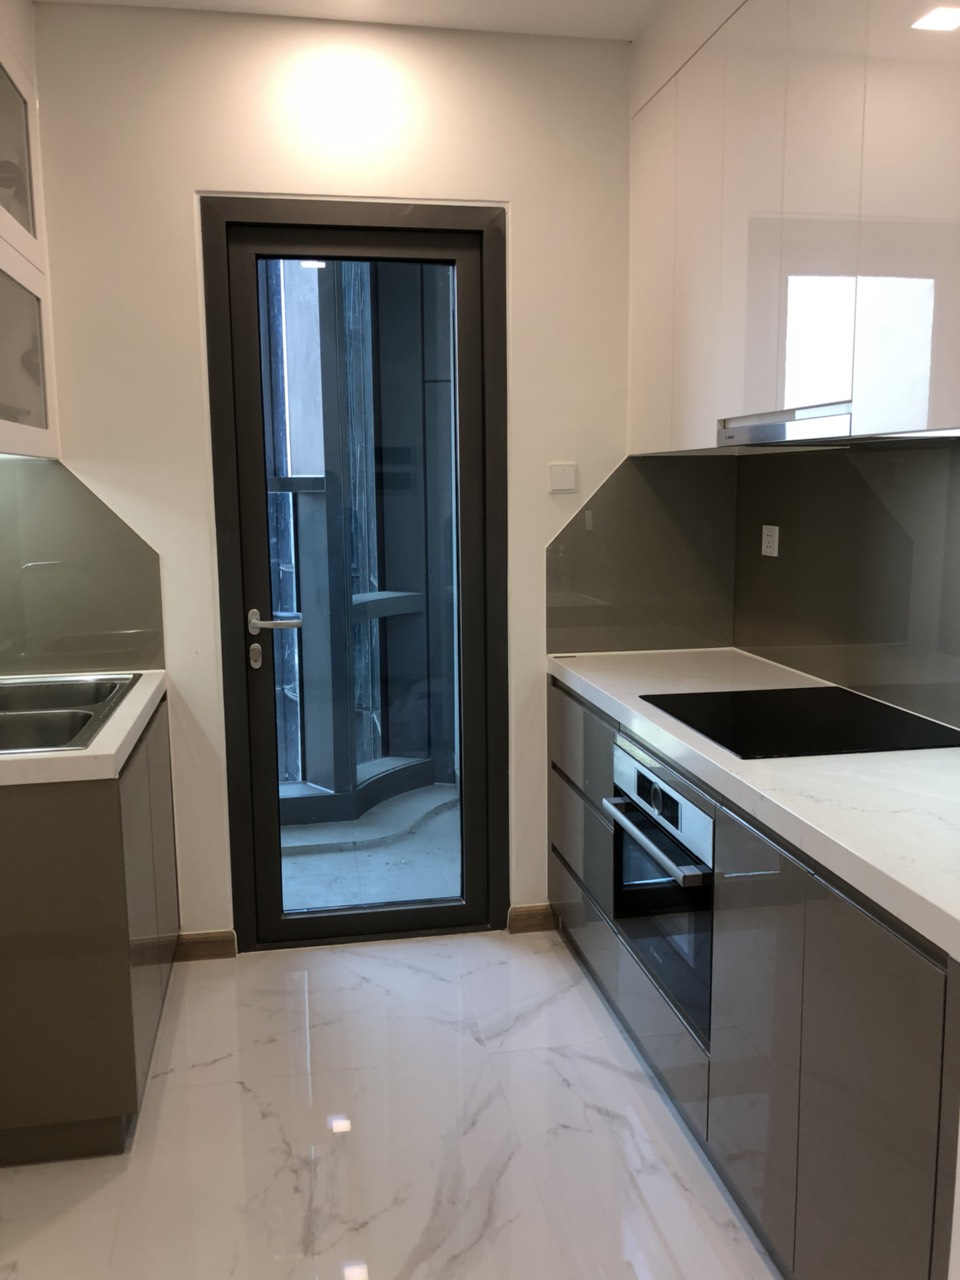 Apartment for rent BT105L5202 (11)